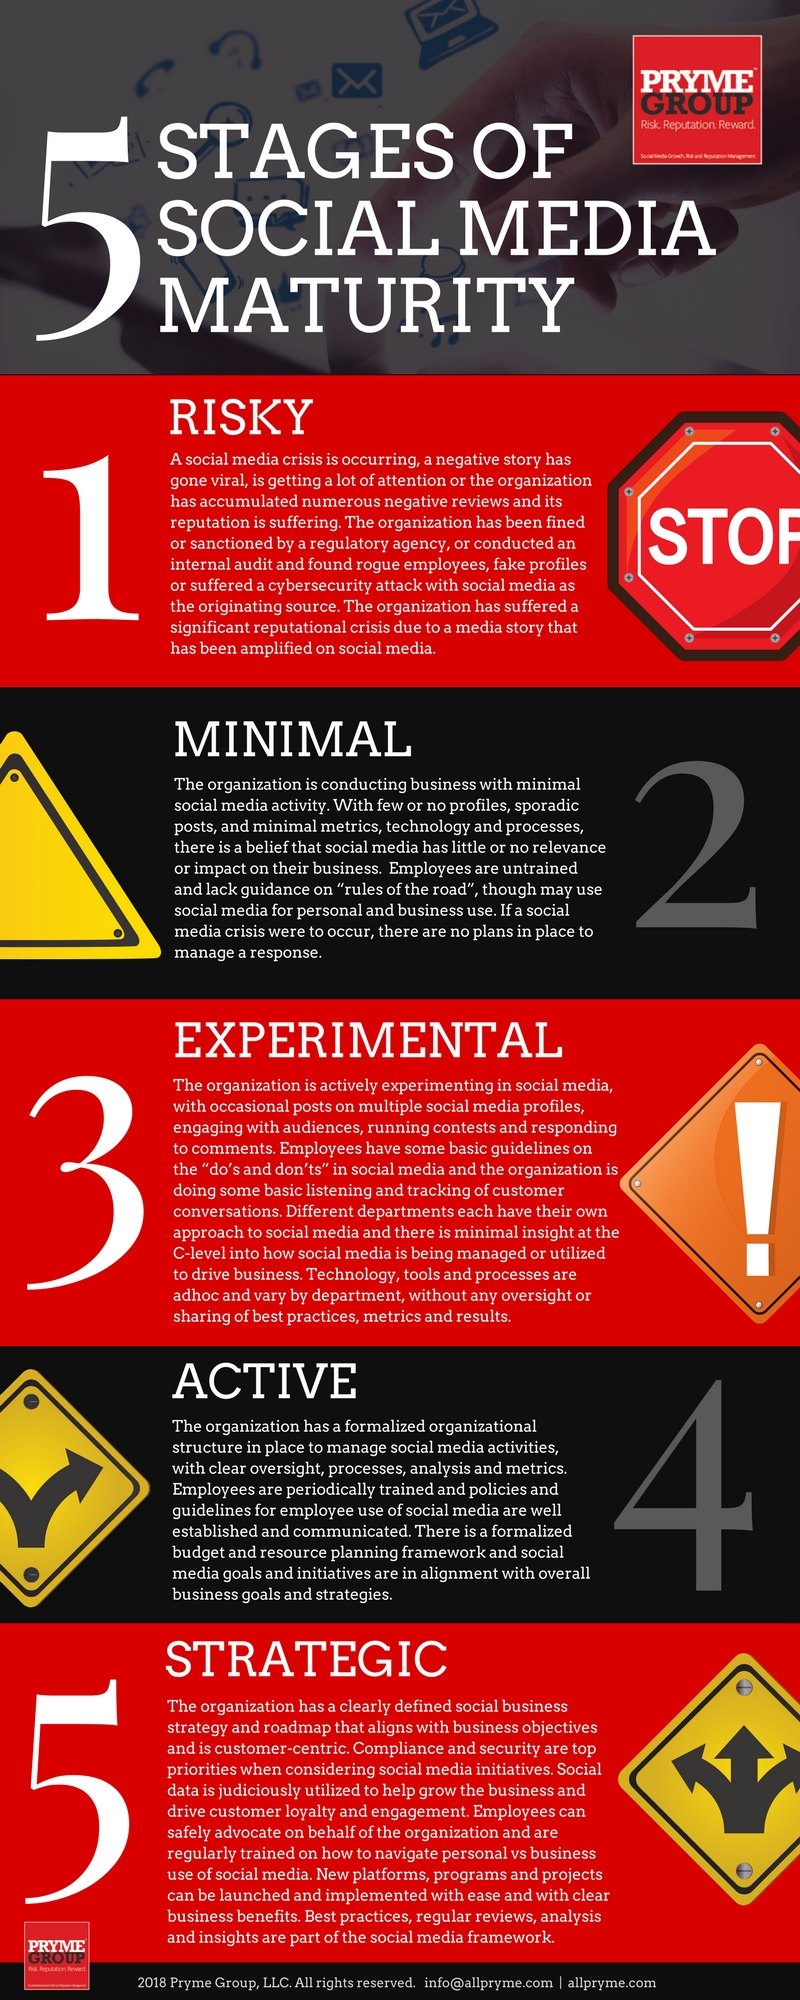 5 Stages of Social Media Maturity